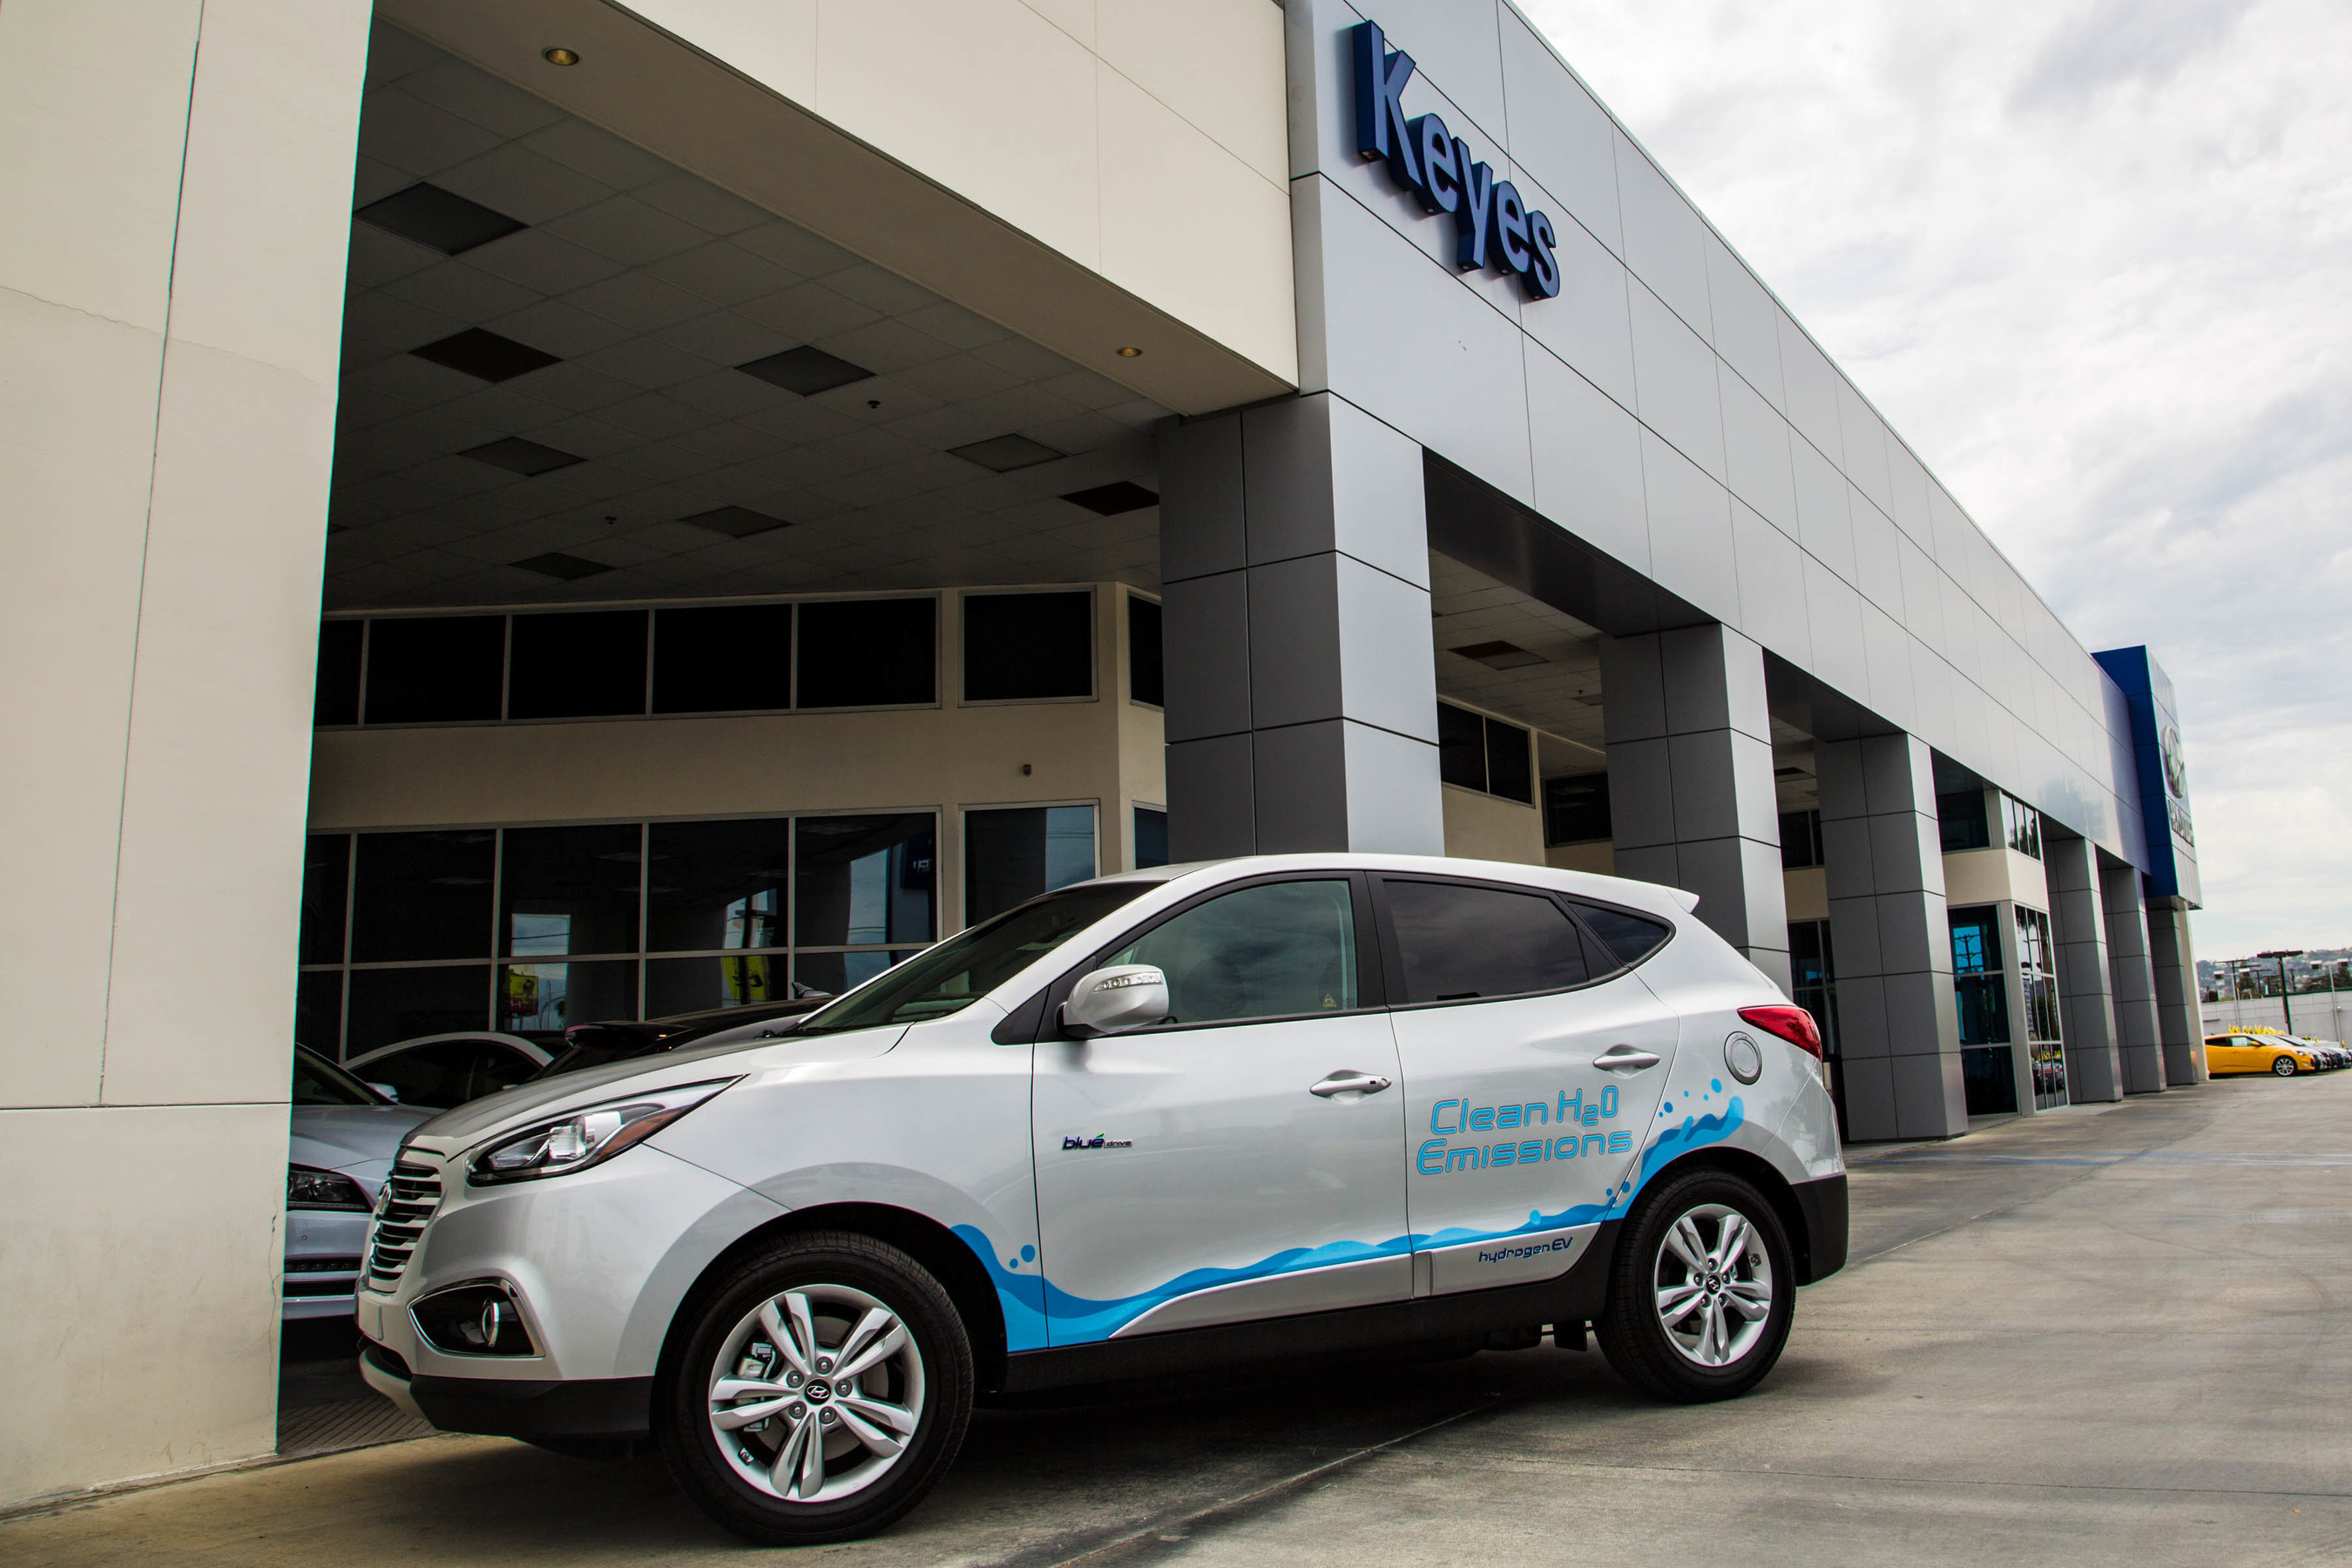 Hyundai Dealership Los Angeles >> Keyes Hyundai In Los Angeles Added To Growing Collection Of